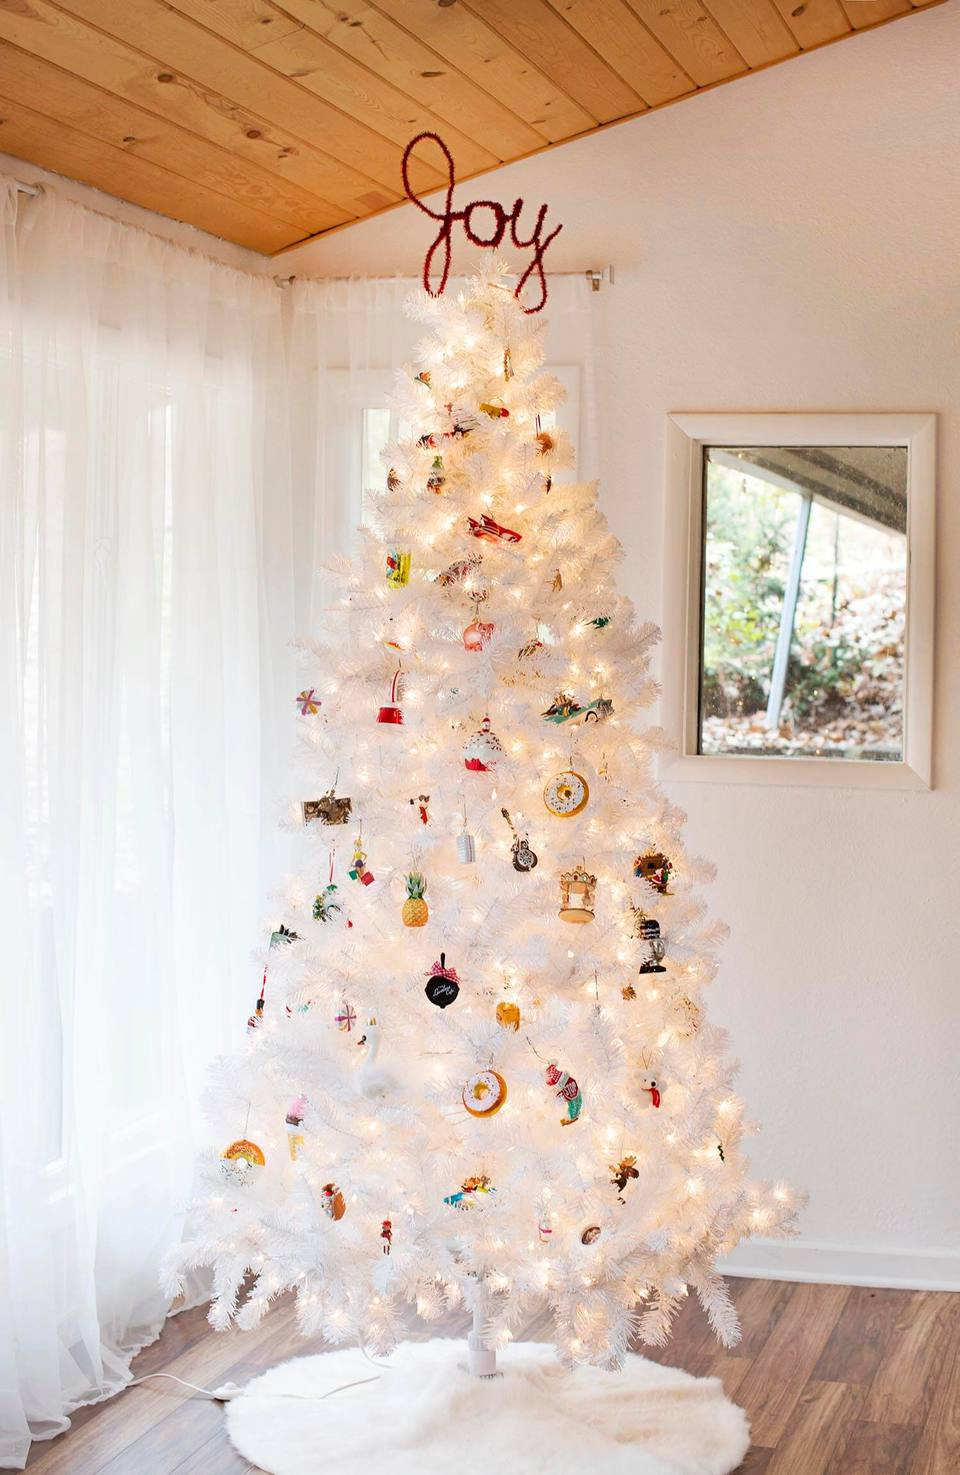 Fun, Festive, and Unique DIY Christmas Tree Toppers